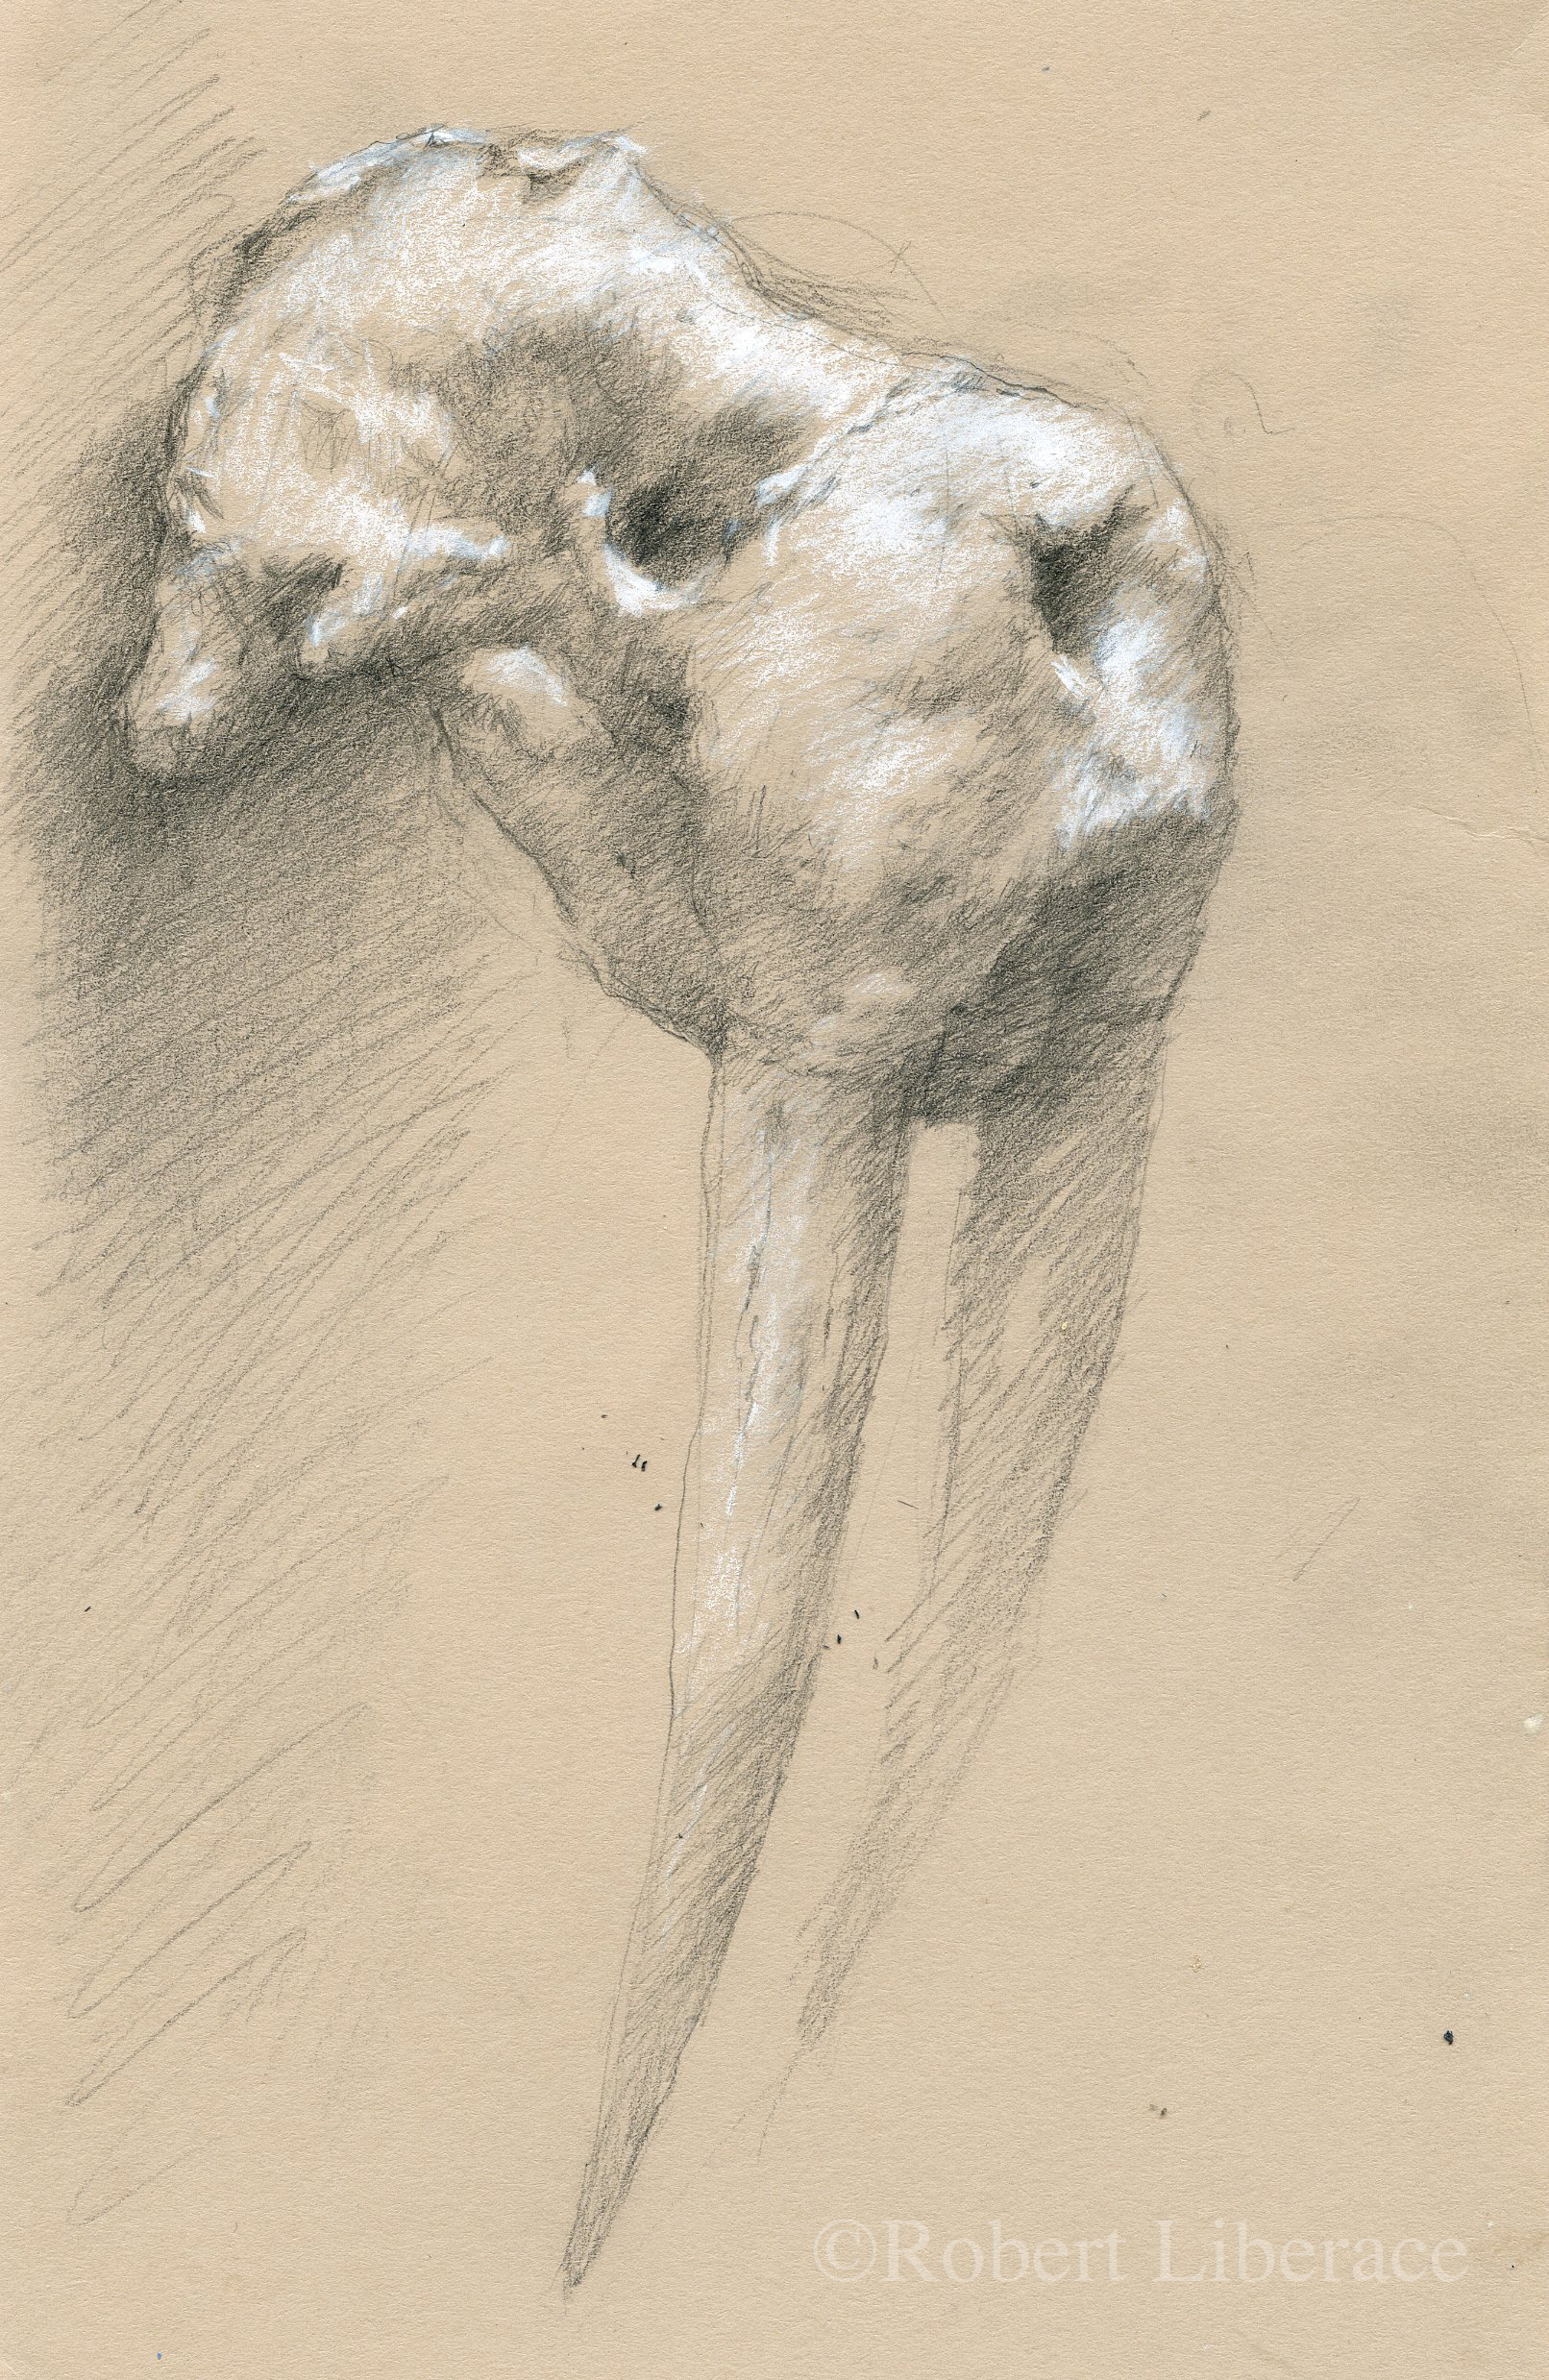 Robert Liberace walrus skull drawing charcoal chalk